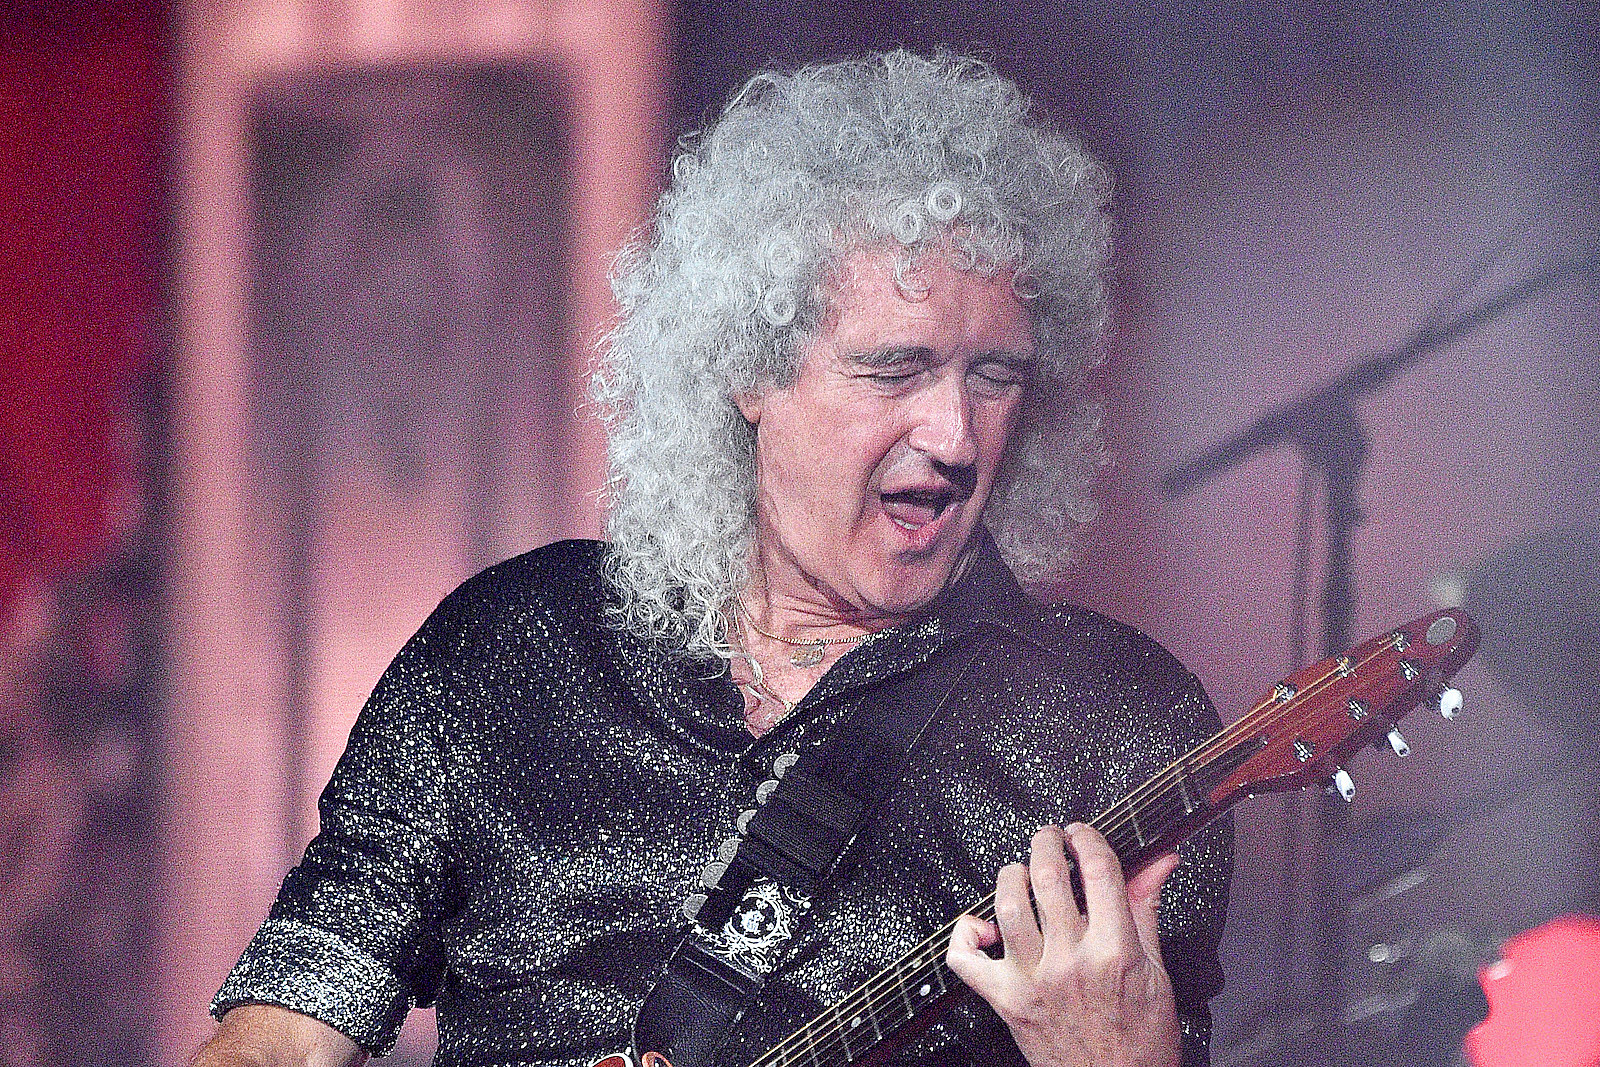 Listen to a Snippet of New Charity Single Featuring Brian May